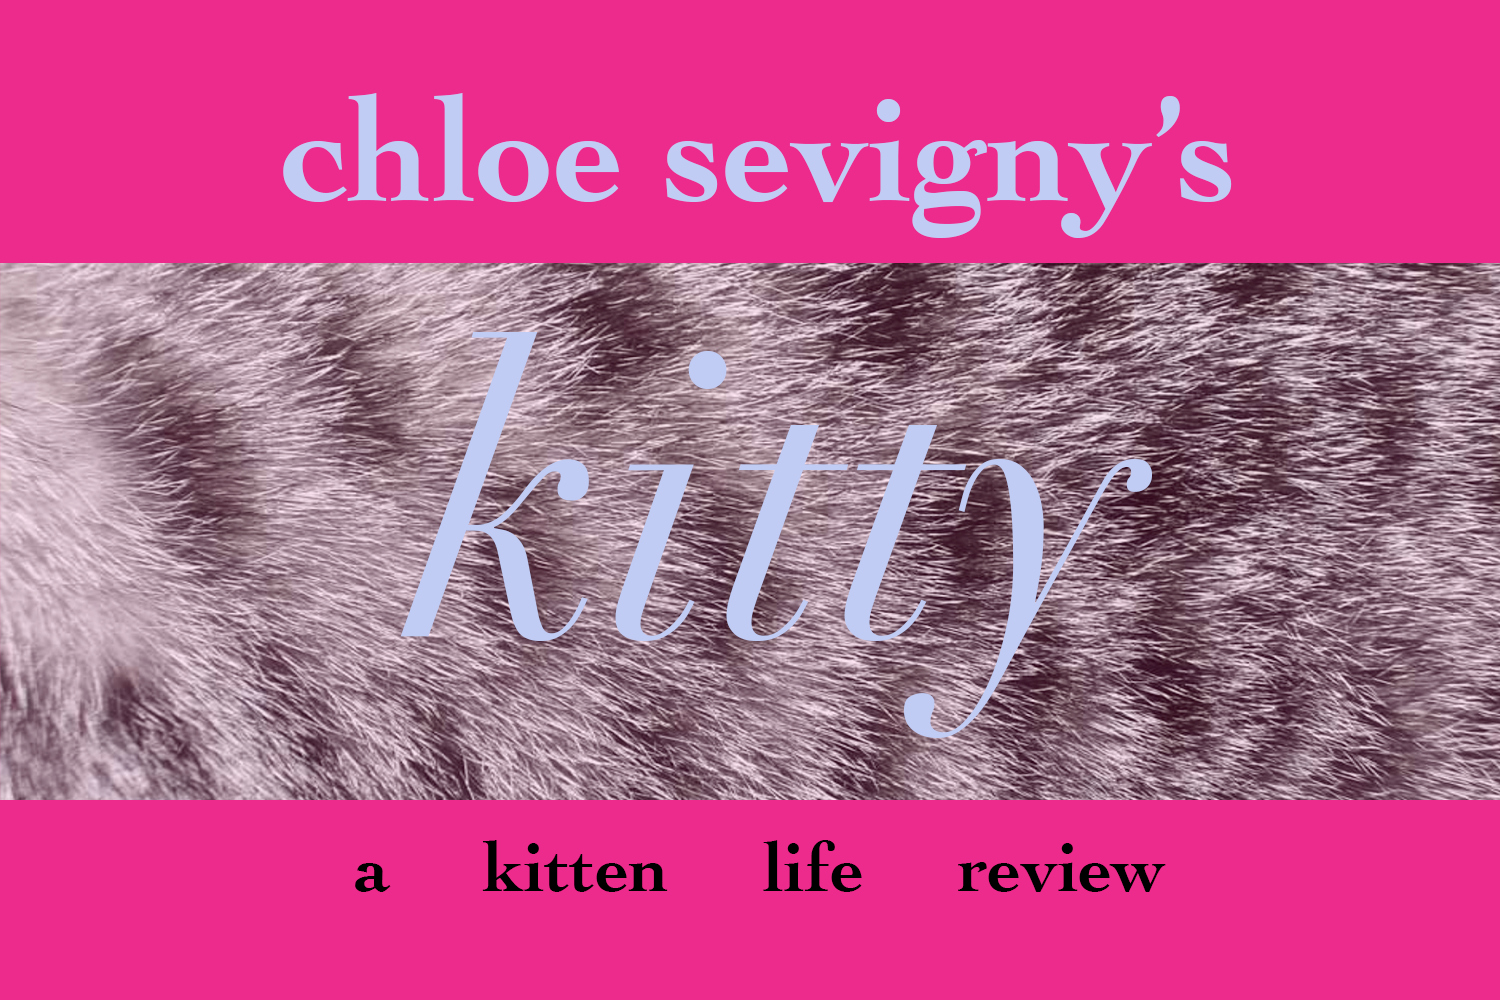 kitty, chloe sevigny, shatterbox film, kitty by chloe sevigny